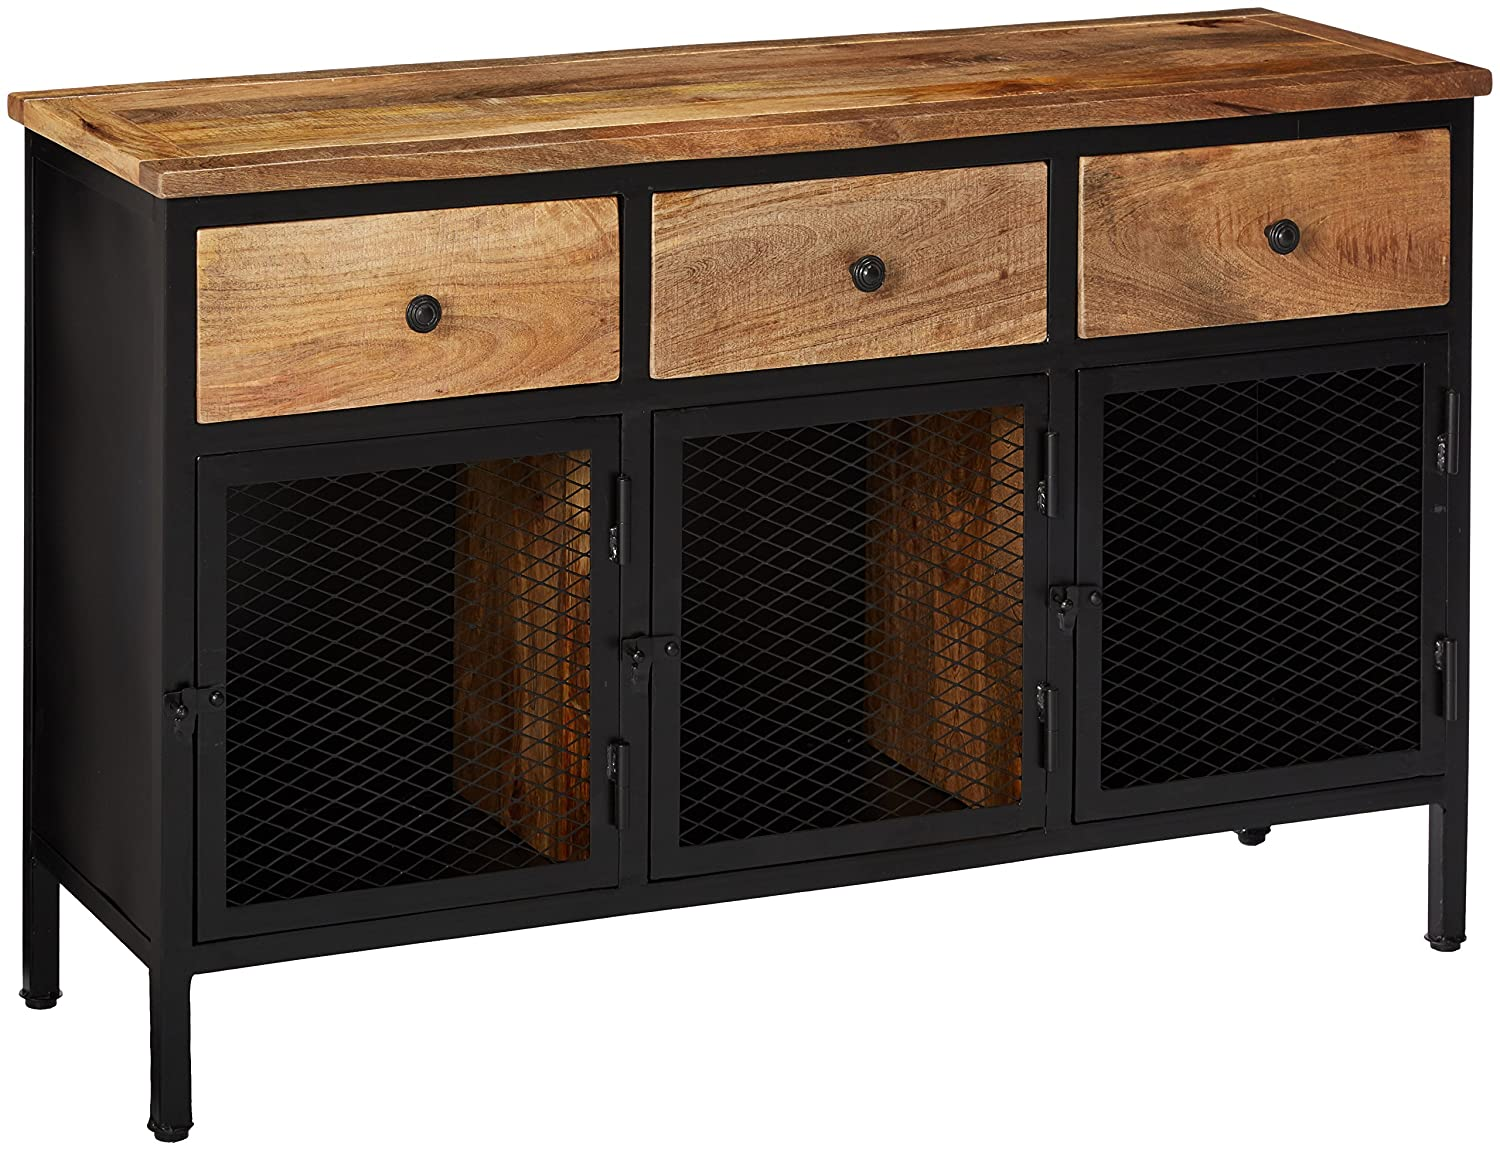 Amazon com ashley furniture signature design ponder ridge accent cabinet 3 storage cabinets 3 drawers light finished wood black metal kitchen